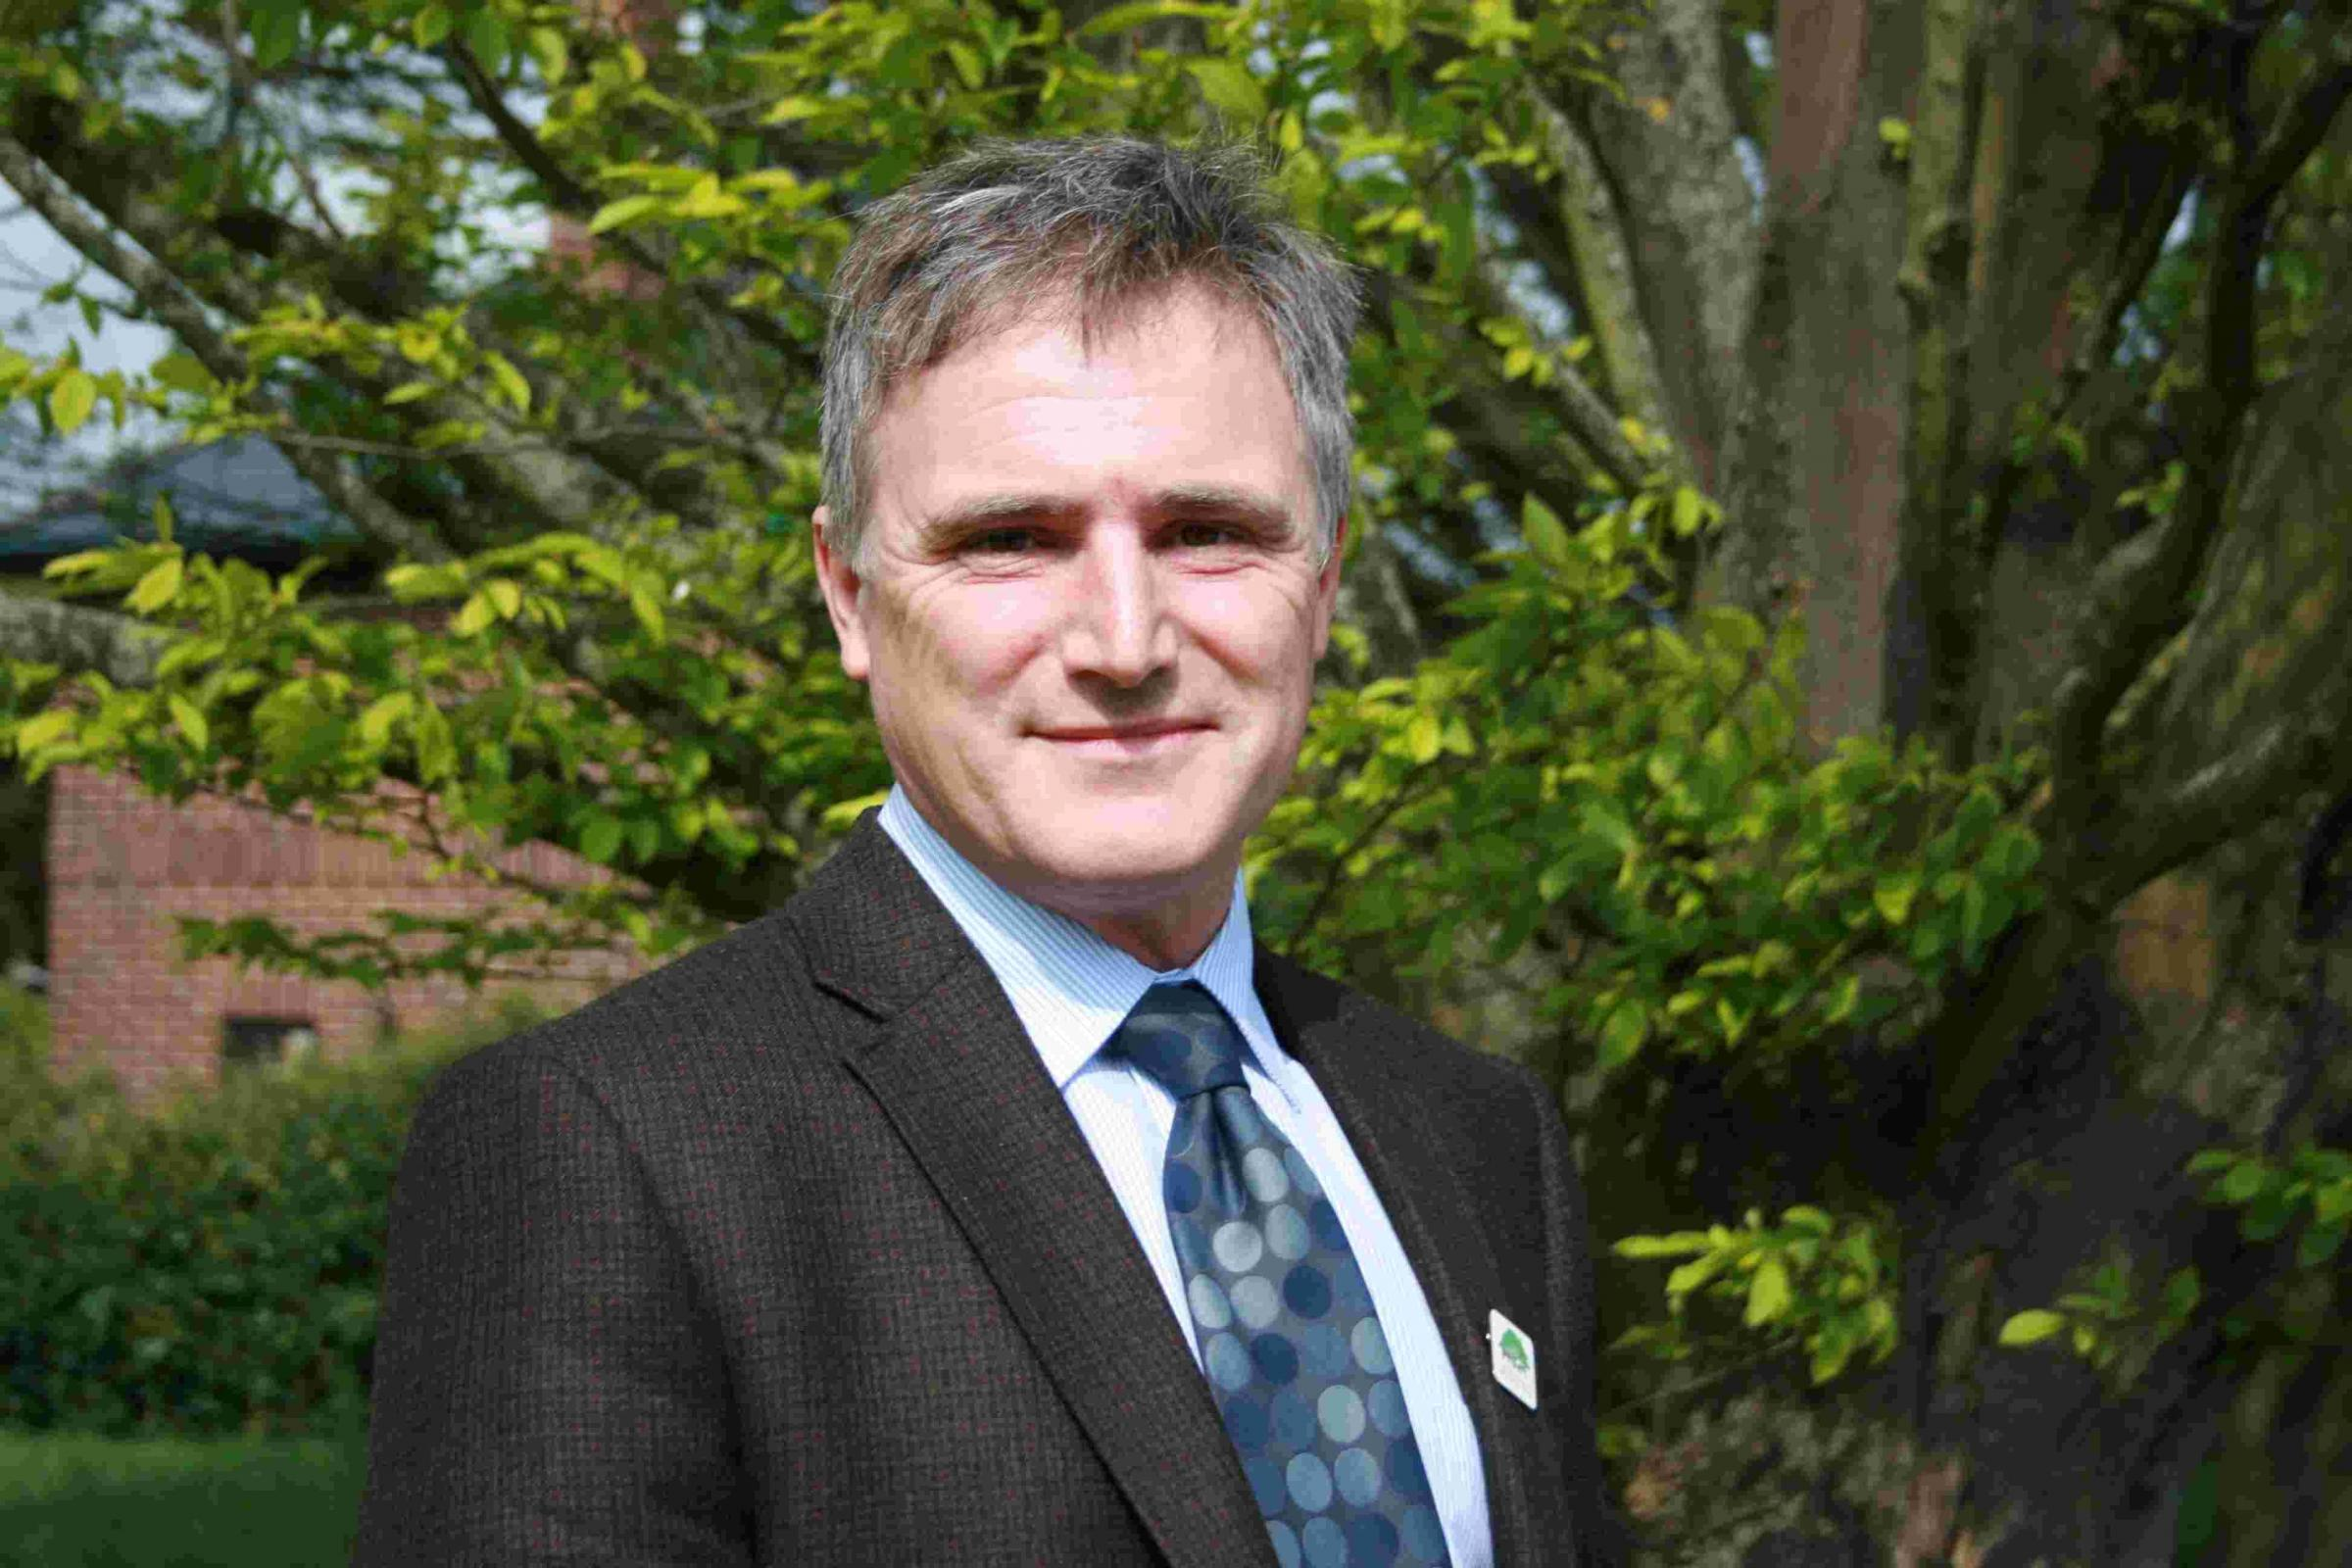 Paul Walton, New Forest National Park Authority's head of environment and rural economy